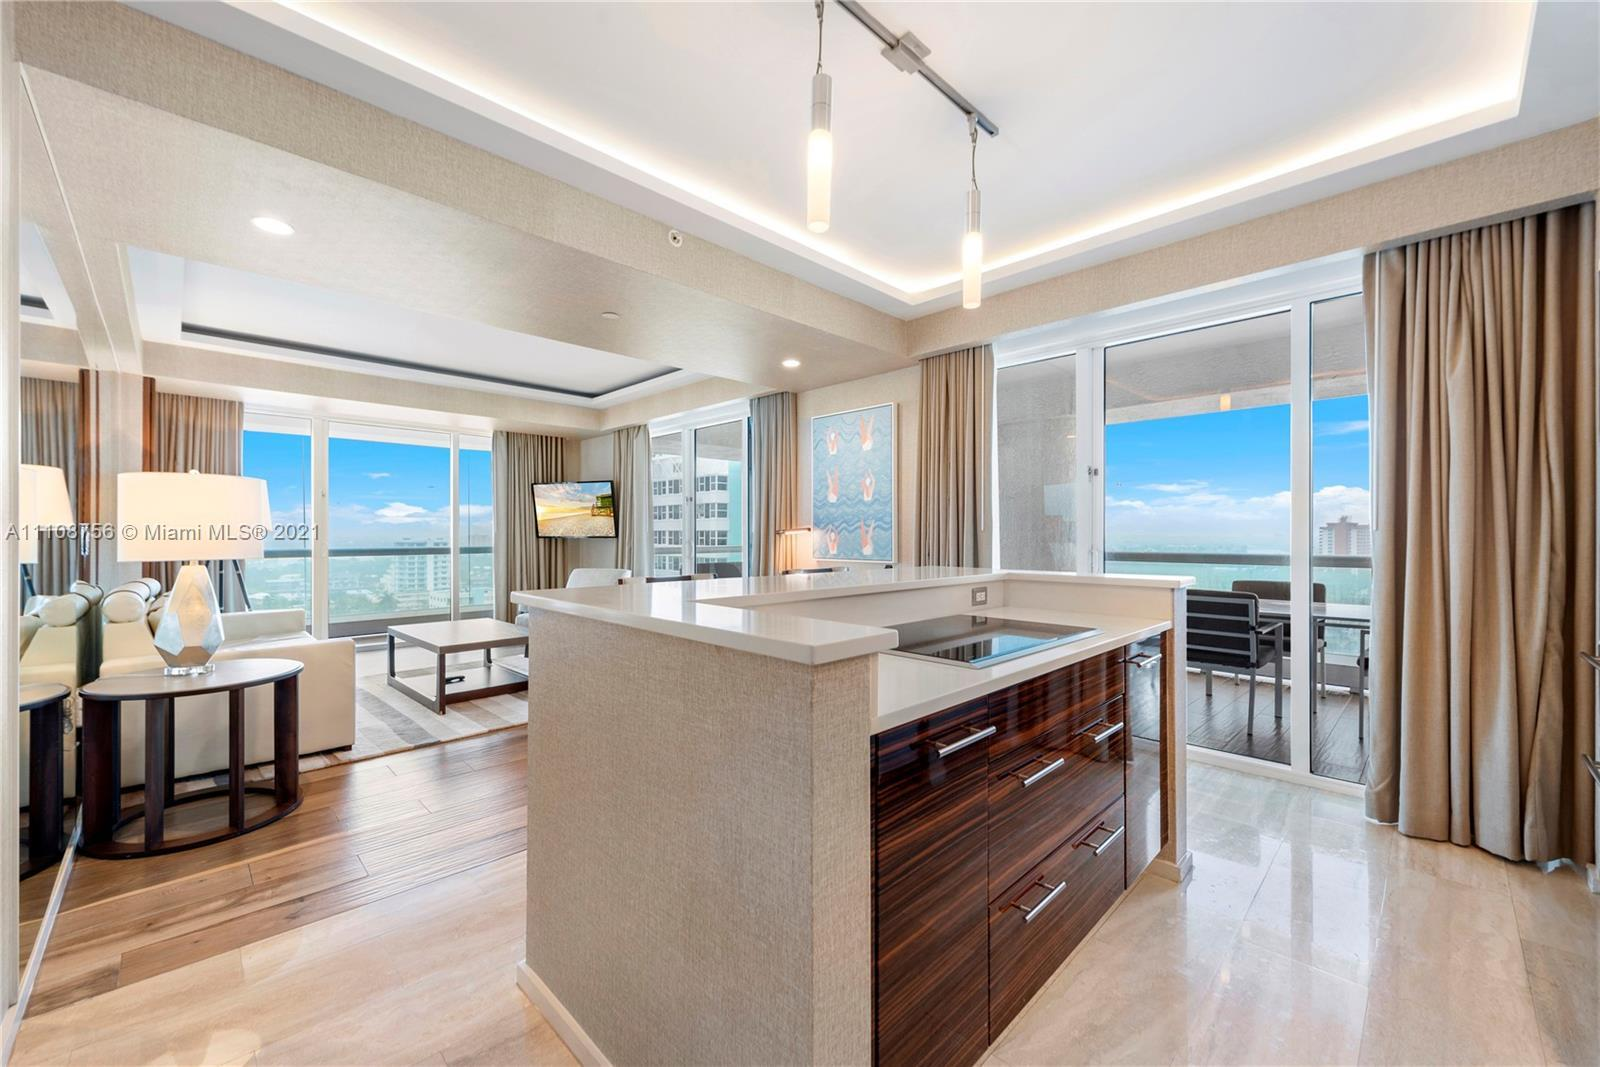 Step into this turn-key lux residence & live like you're on vacation. Ideal for snowbirds, investors